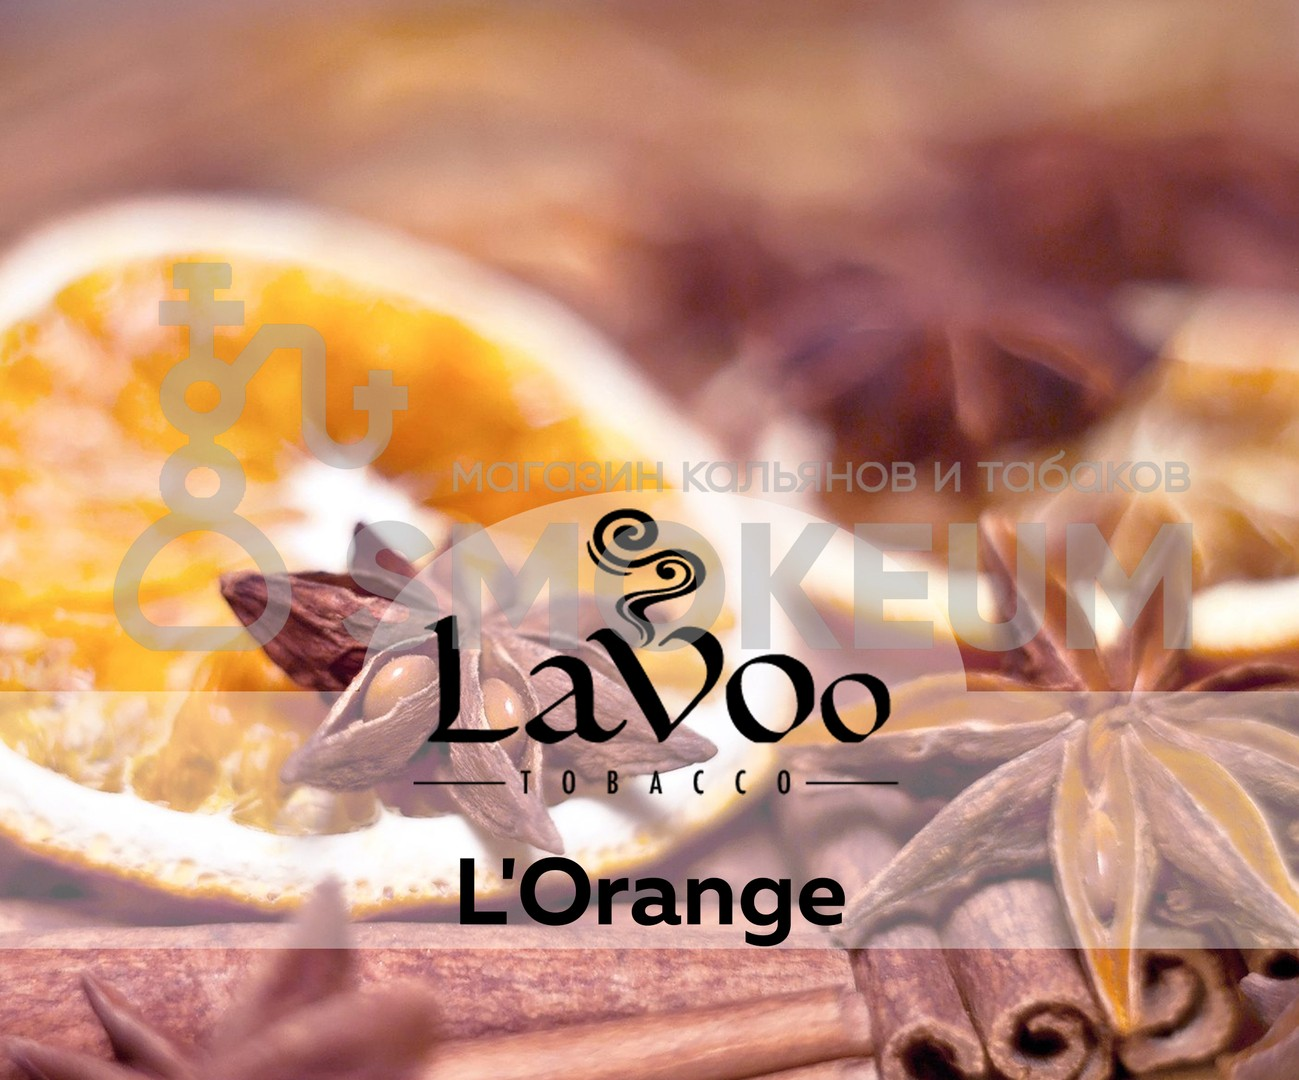 Табак Lavoo - L'Orange (Лаву) 200 гр